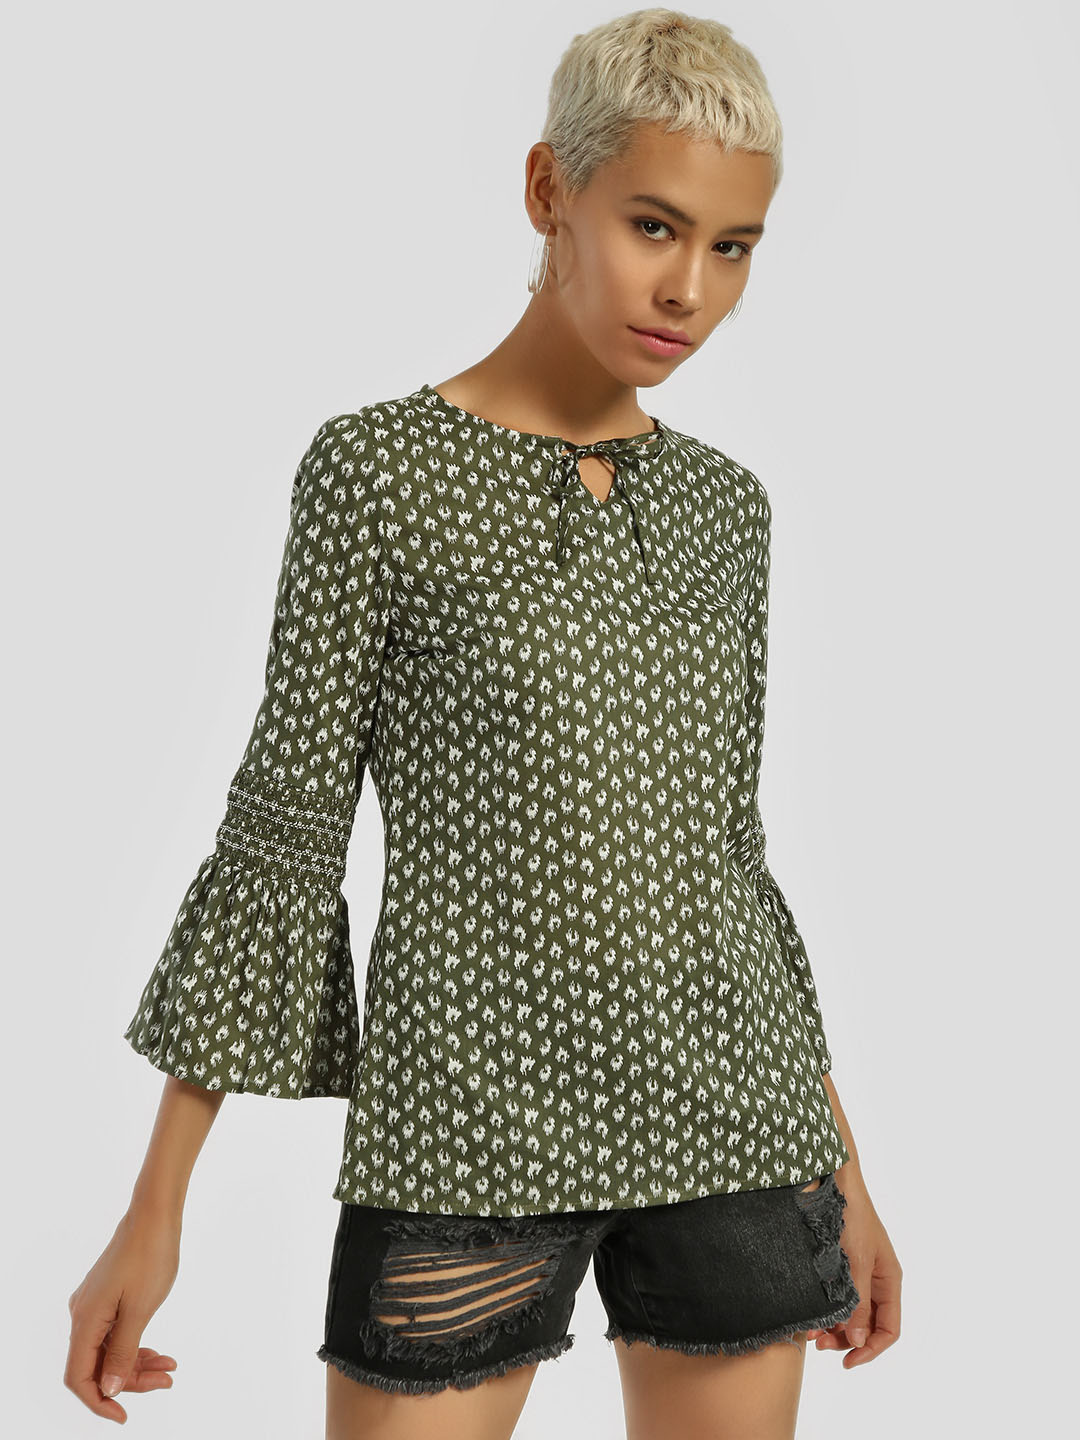 Lee Cooper Green All Over Print Blouse 1